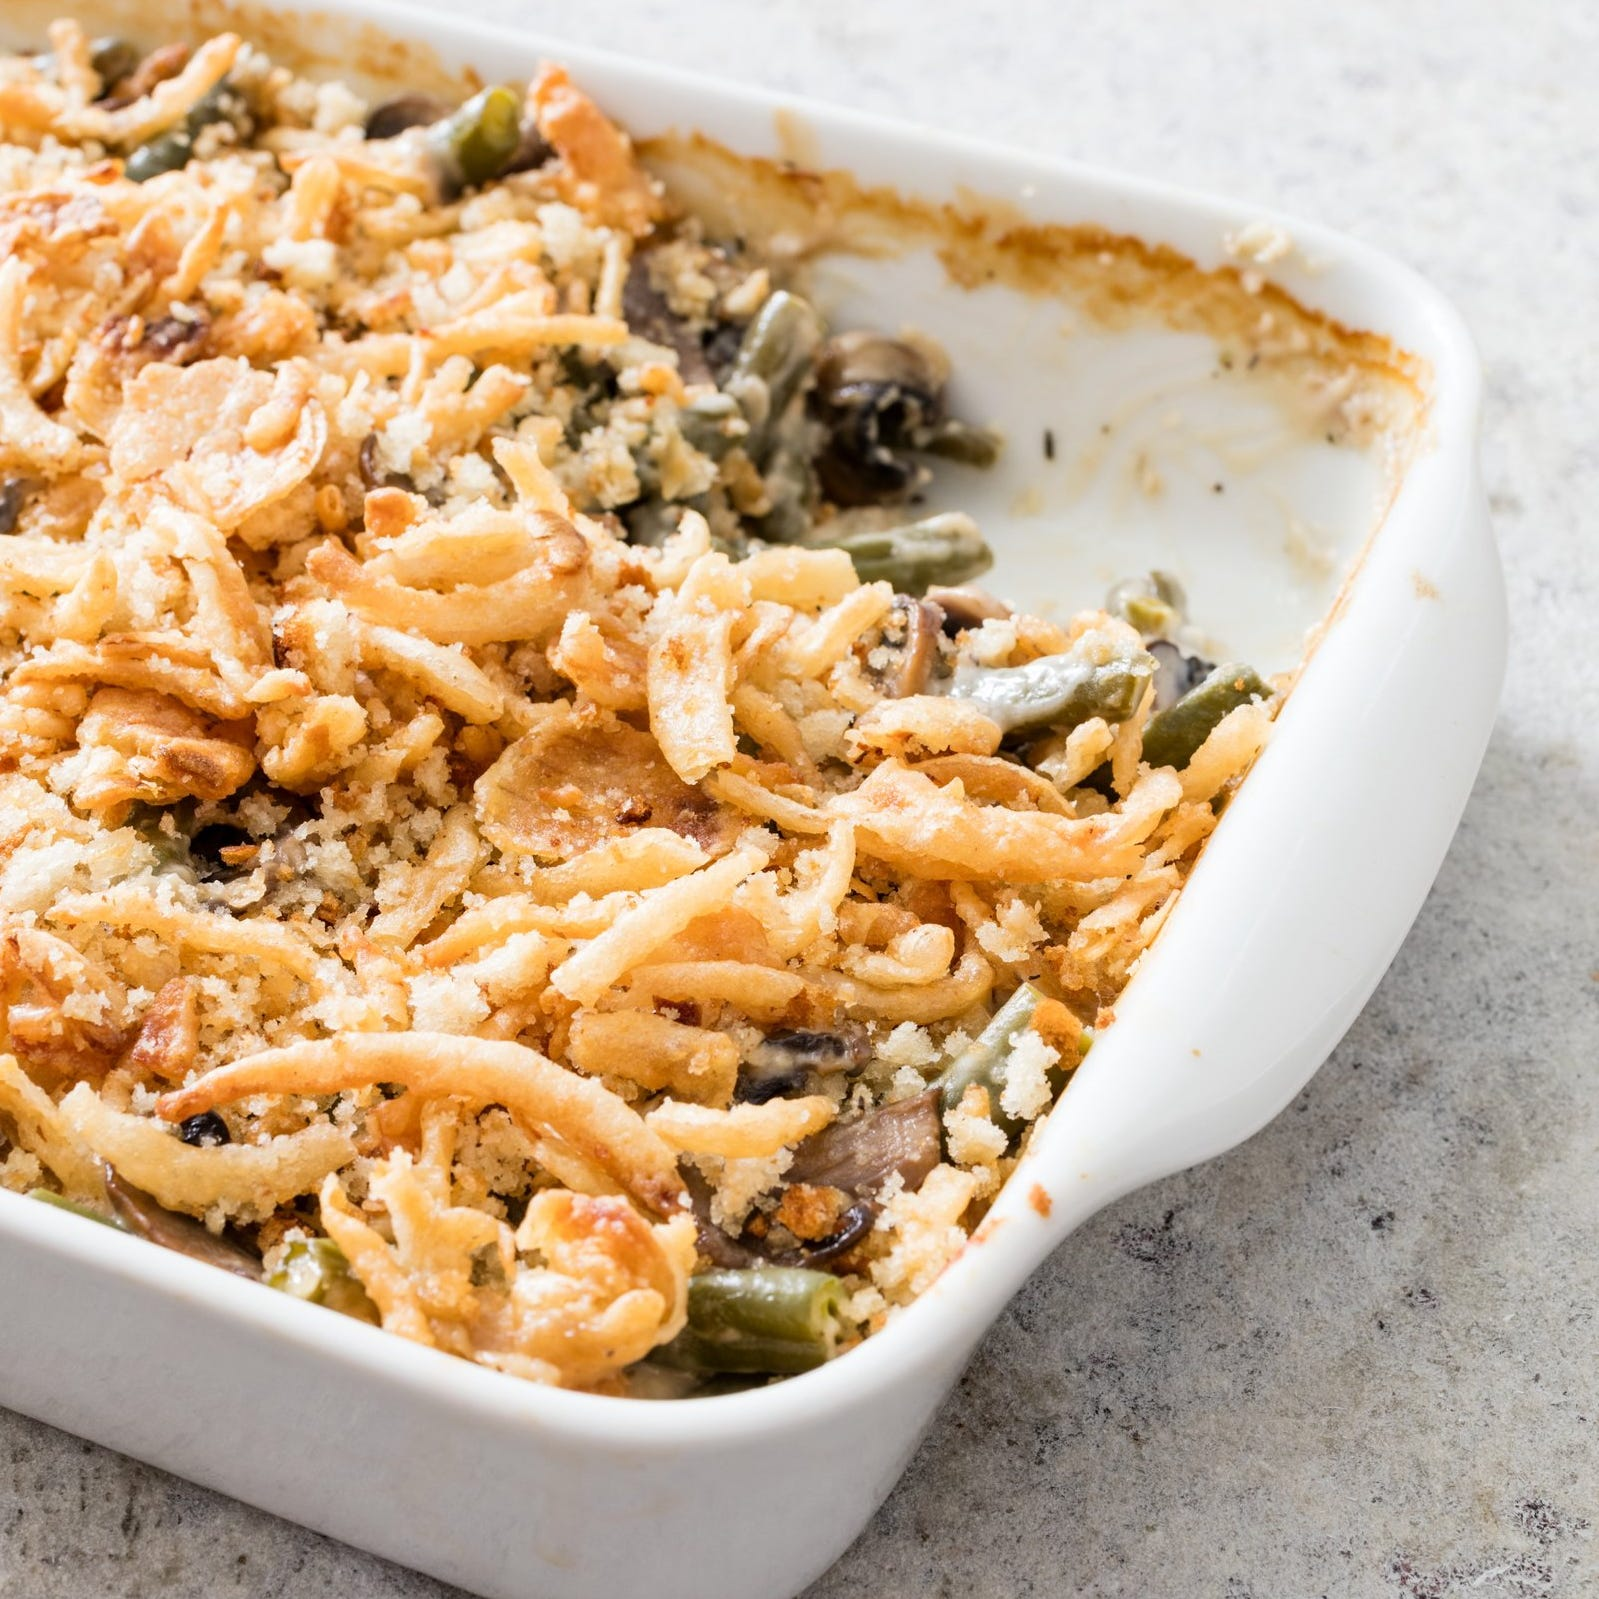 Green bean casseroles are fast and easy, and they've stood the test of time